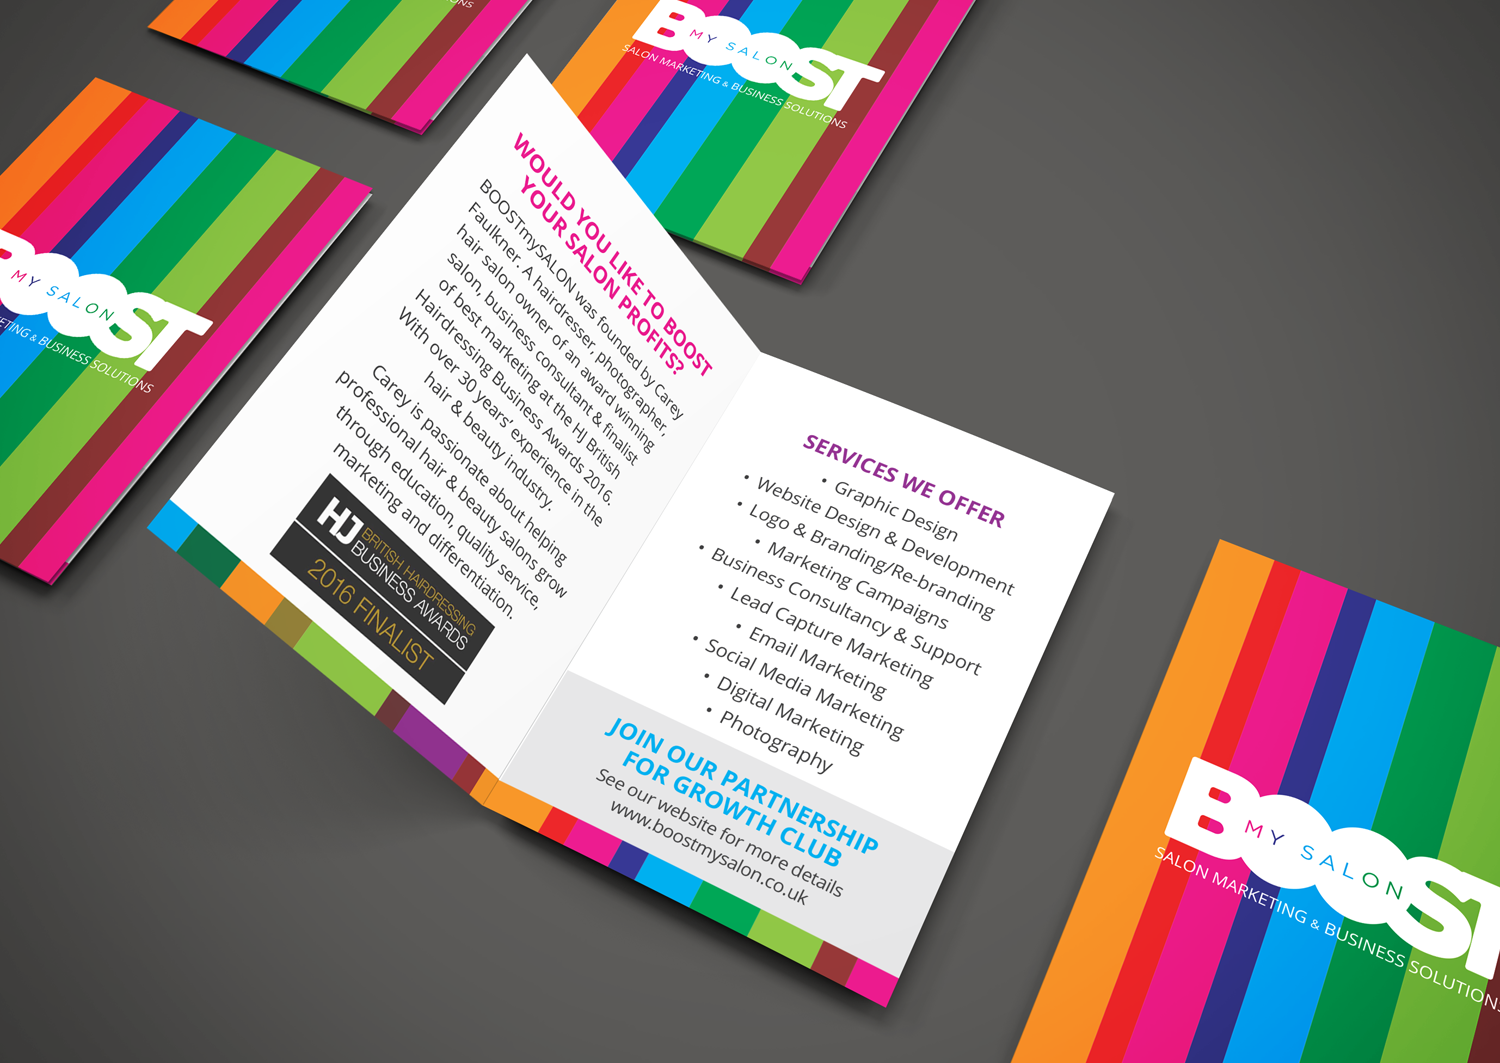 Flyer design and print to promote the BOOSTmySALON service to local hairdressers